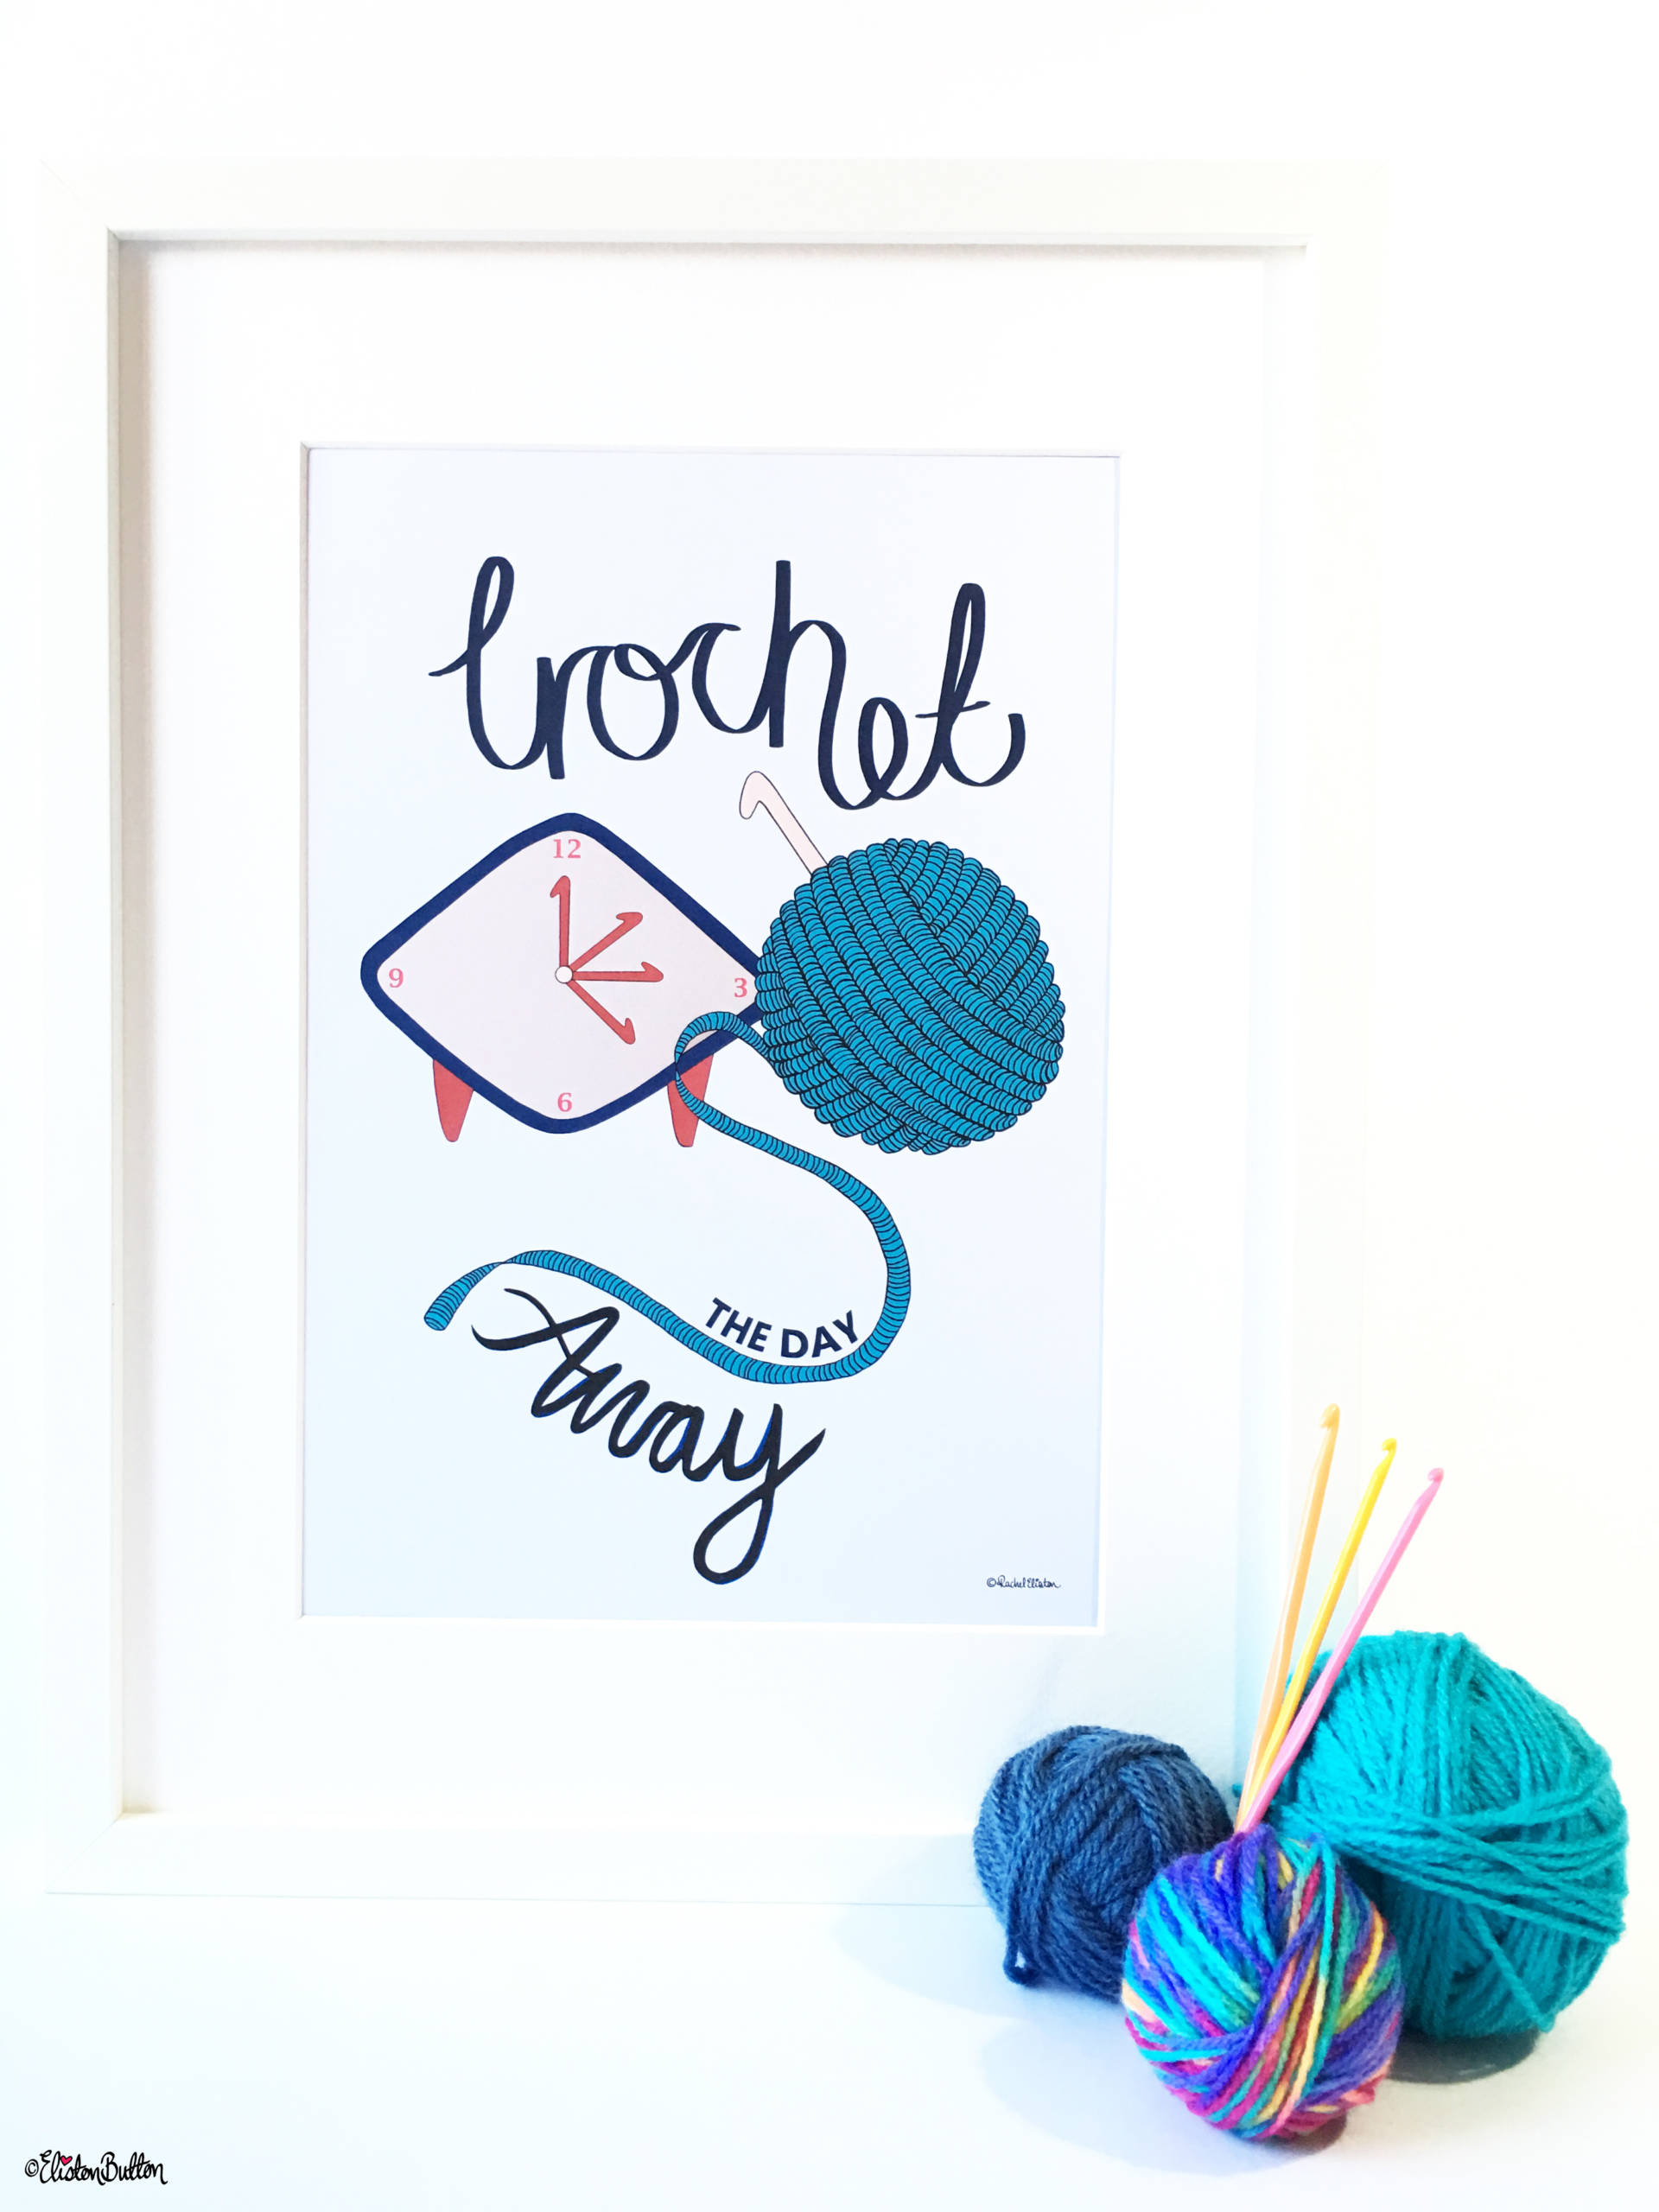 Crochet the Day Away Wall Art Print by Eliston Button with Yarn and Crochet Hooks - Create 30 – No. 3 & 4 – Crochet Illustrated Quote Prints at www.elistonbutton.com - Eliston Button - That Crafty Kid – Art, Design, Craft & Adventure.